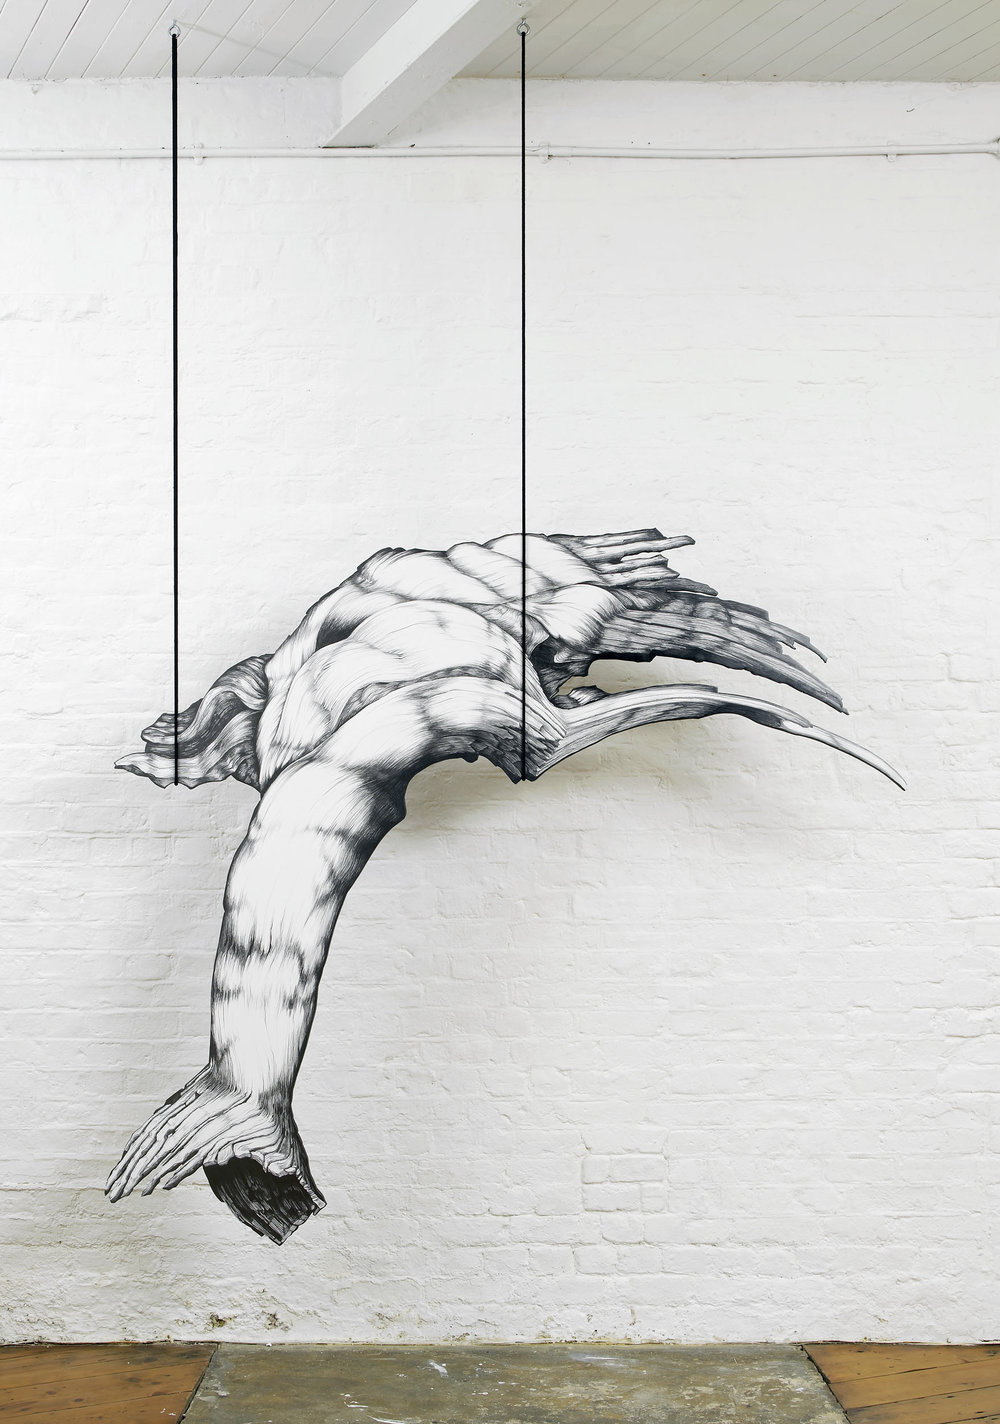 Hanging-Bacon,-Pencil,-gesso,-Structura,-birch-plywood,-rope,-158-x-188-x-1.jpg